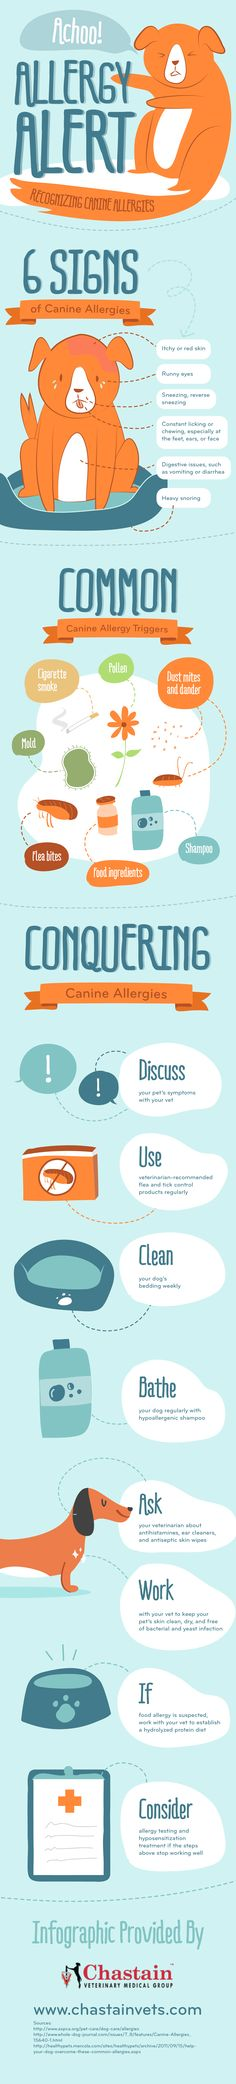 Recognizing canine allergies infographic - very helpful!